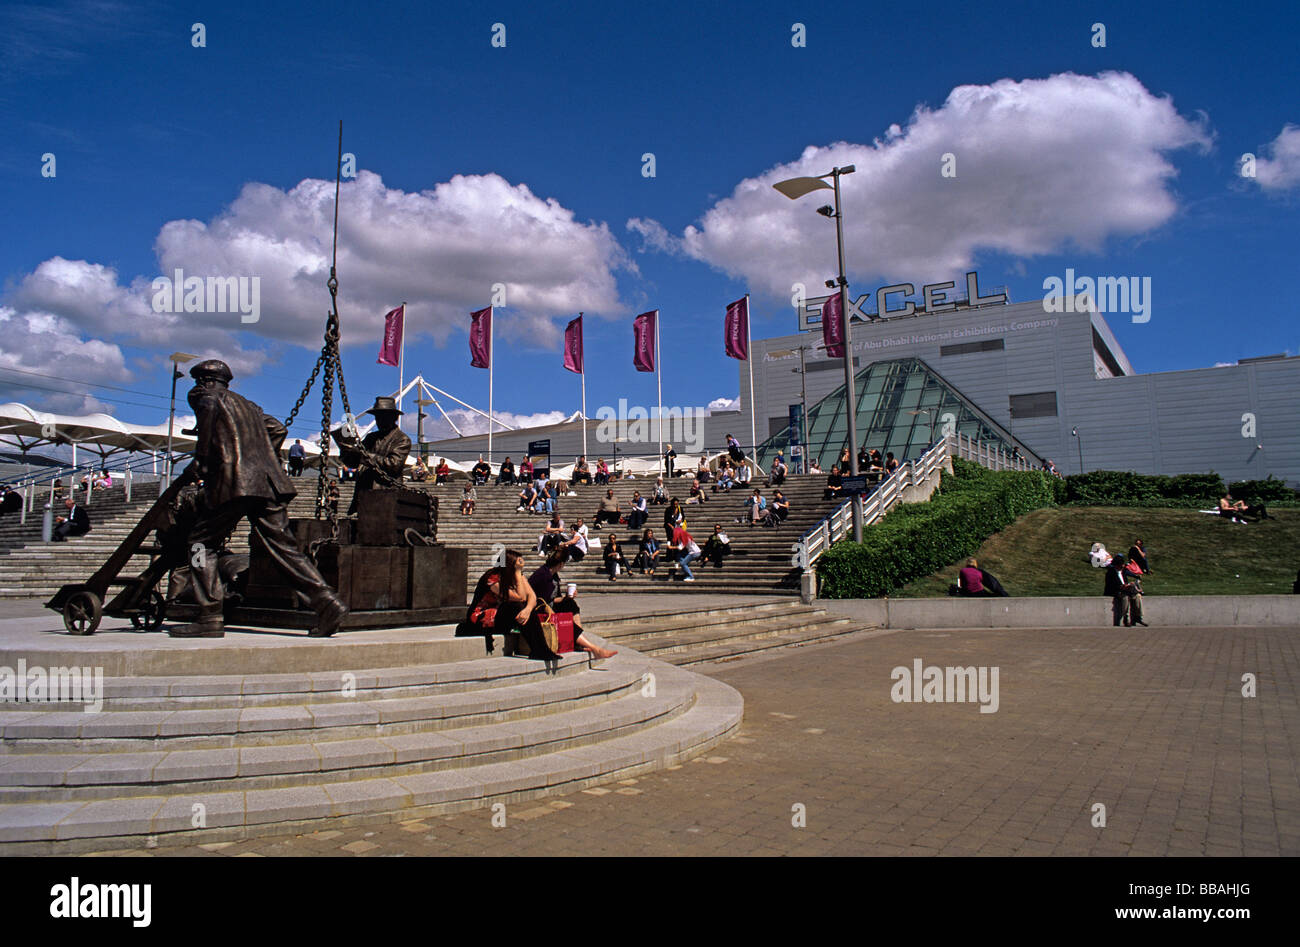 Huge exhibition centre in East London Docklands built on the north side of the former Royal Victoria Docks - Stock Image